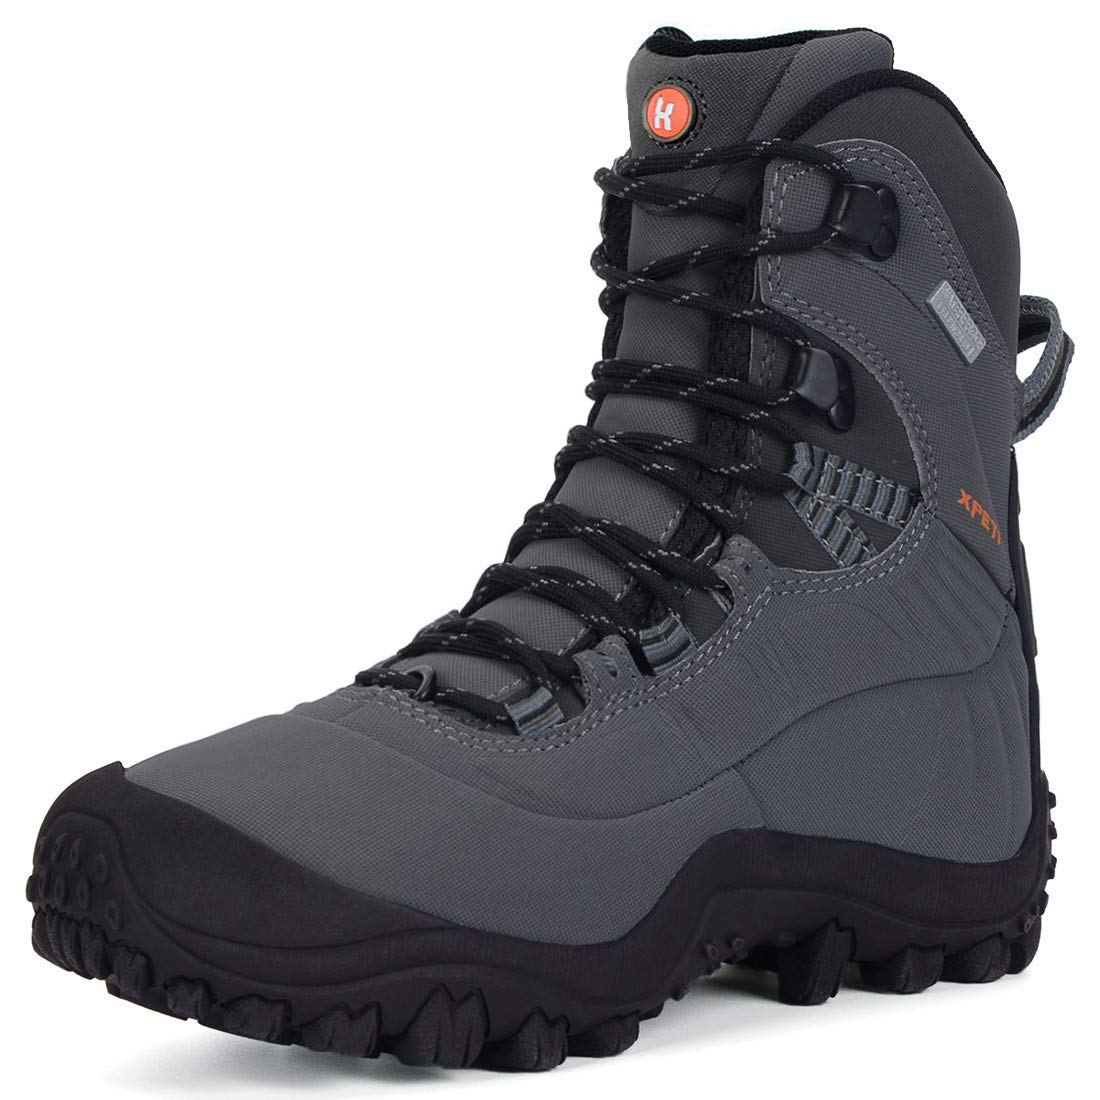 XPETI Thermador High Top Insulated Waterproof